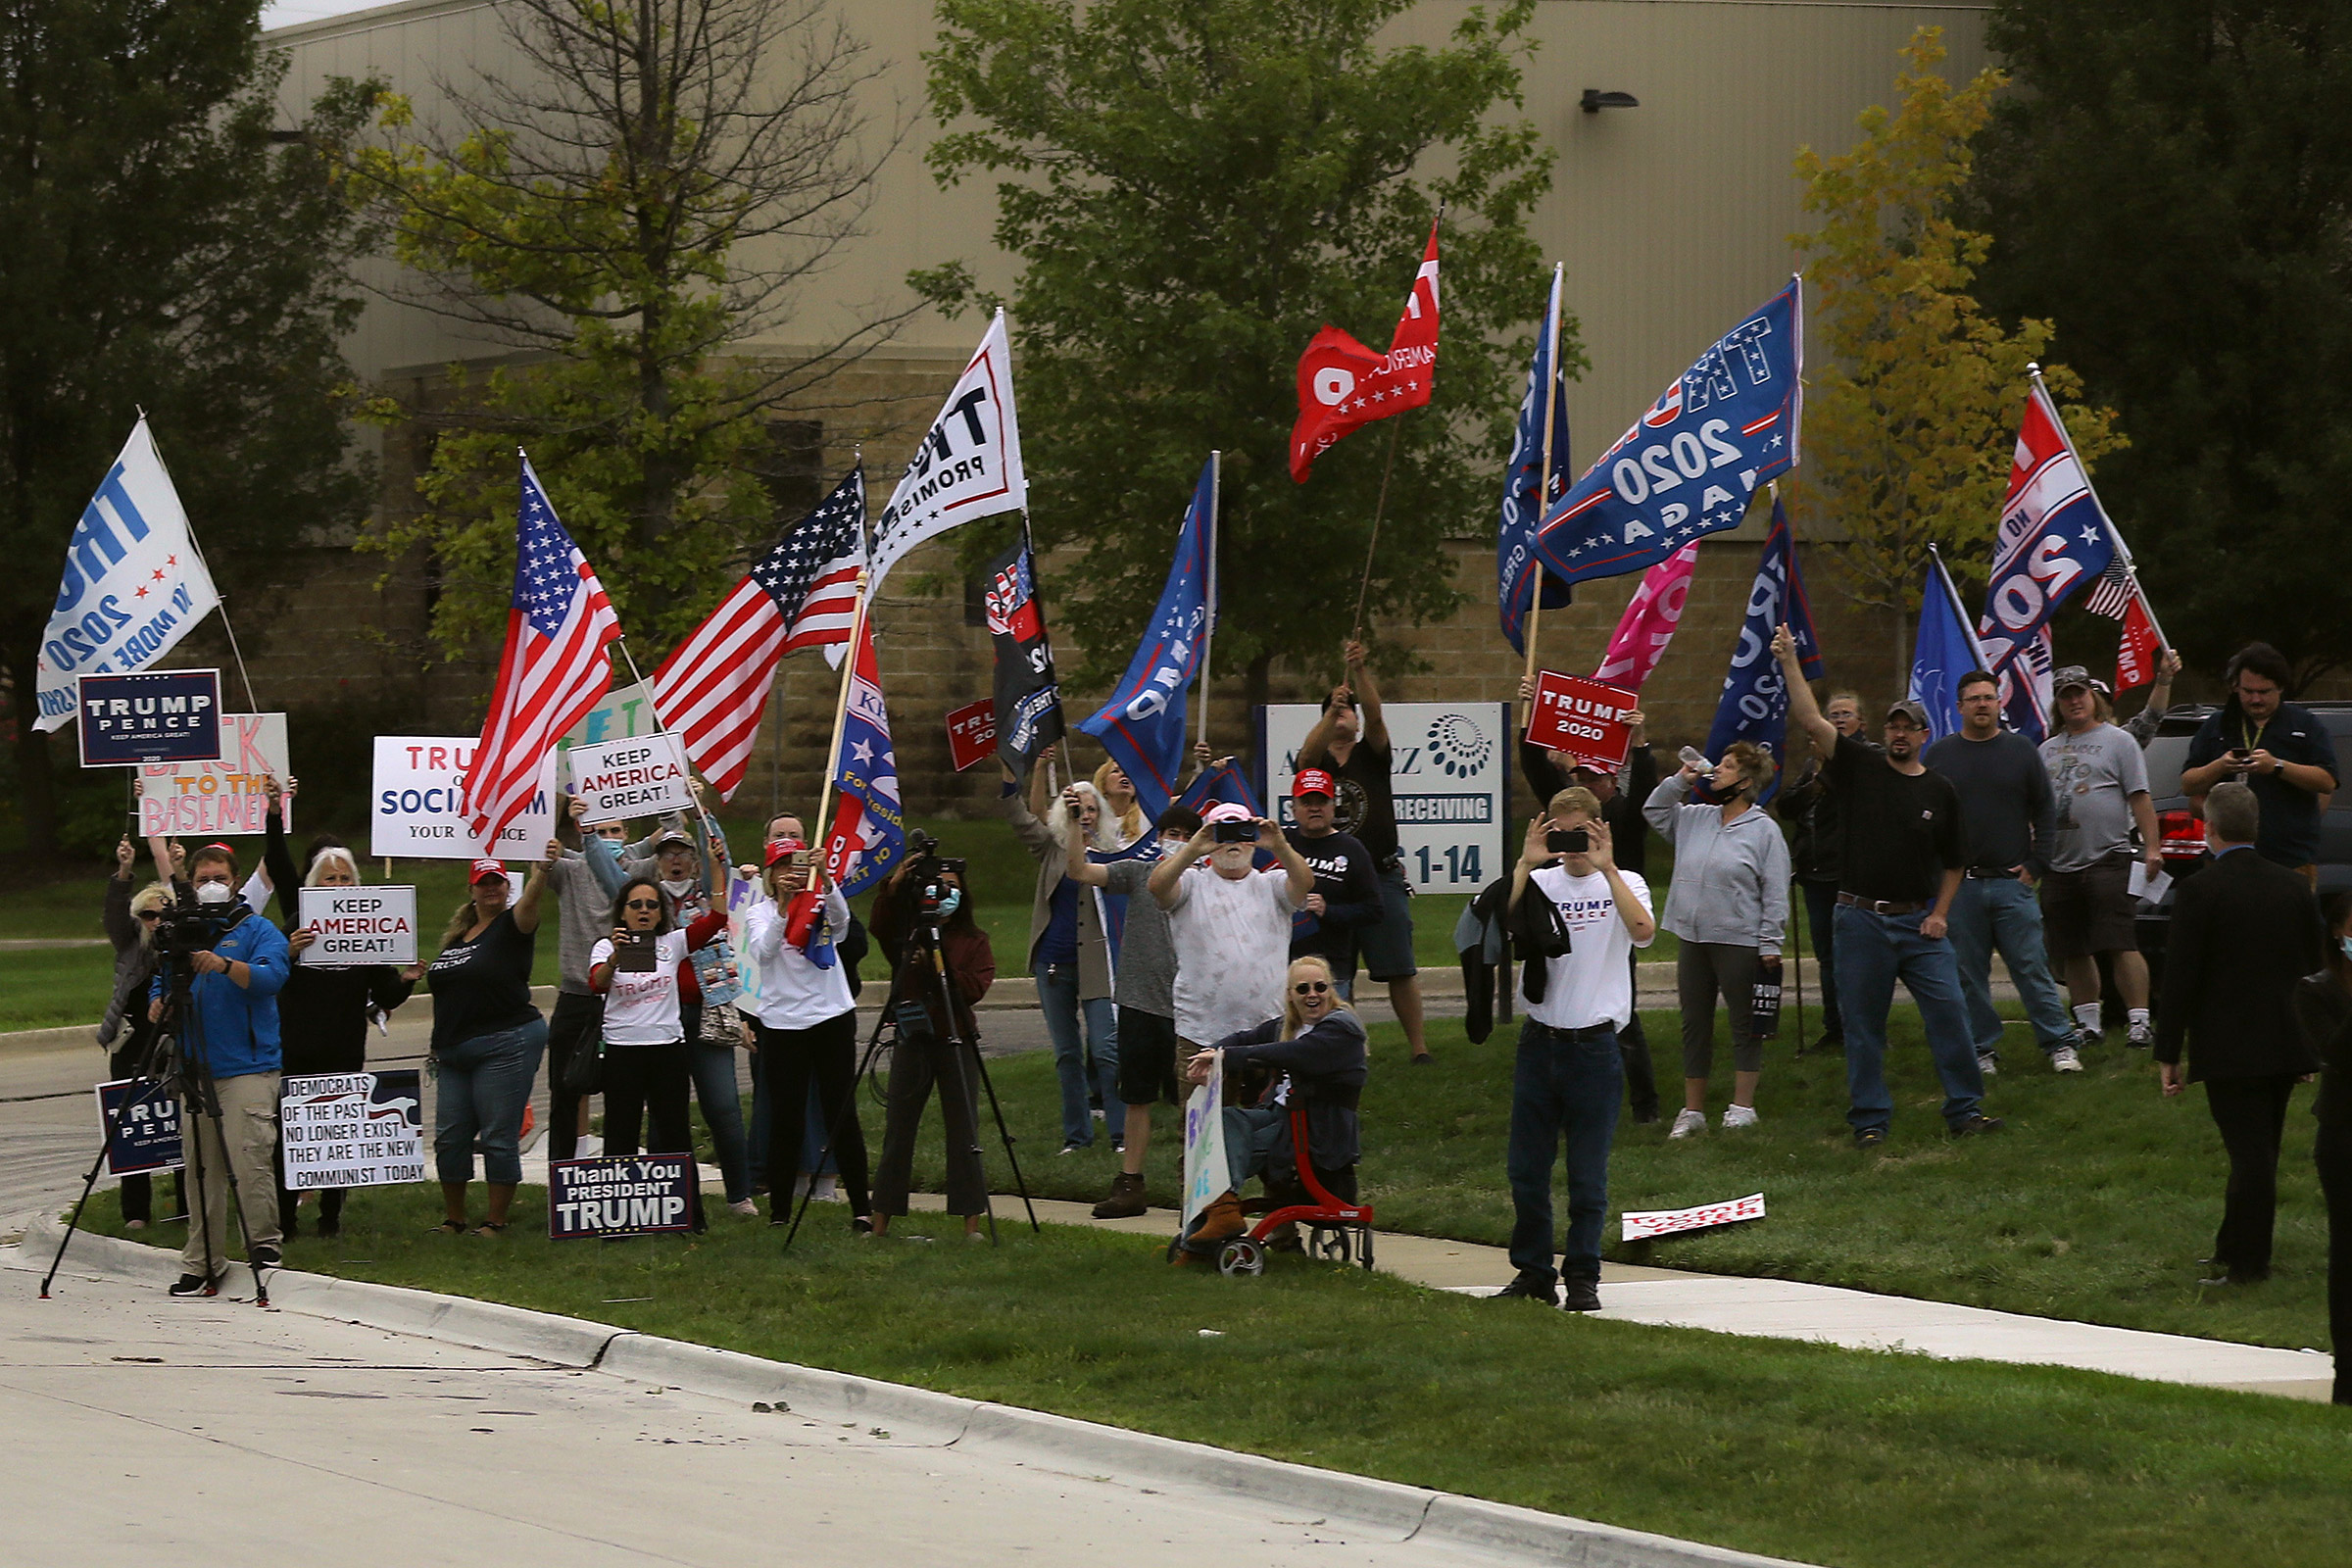 Supporters of President Donald Trump gather across the street from the United Auto Workers Region 1 offices where Democratic presidential nominee and former Vice President Joe Biden is scheduled to speak in Warren, Mich., on Sept. 09, 2020.